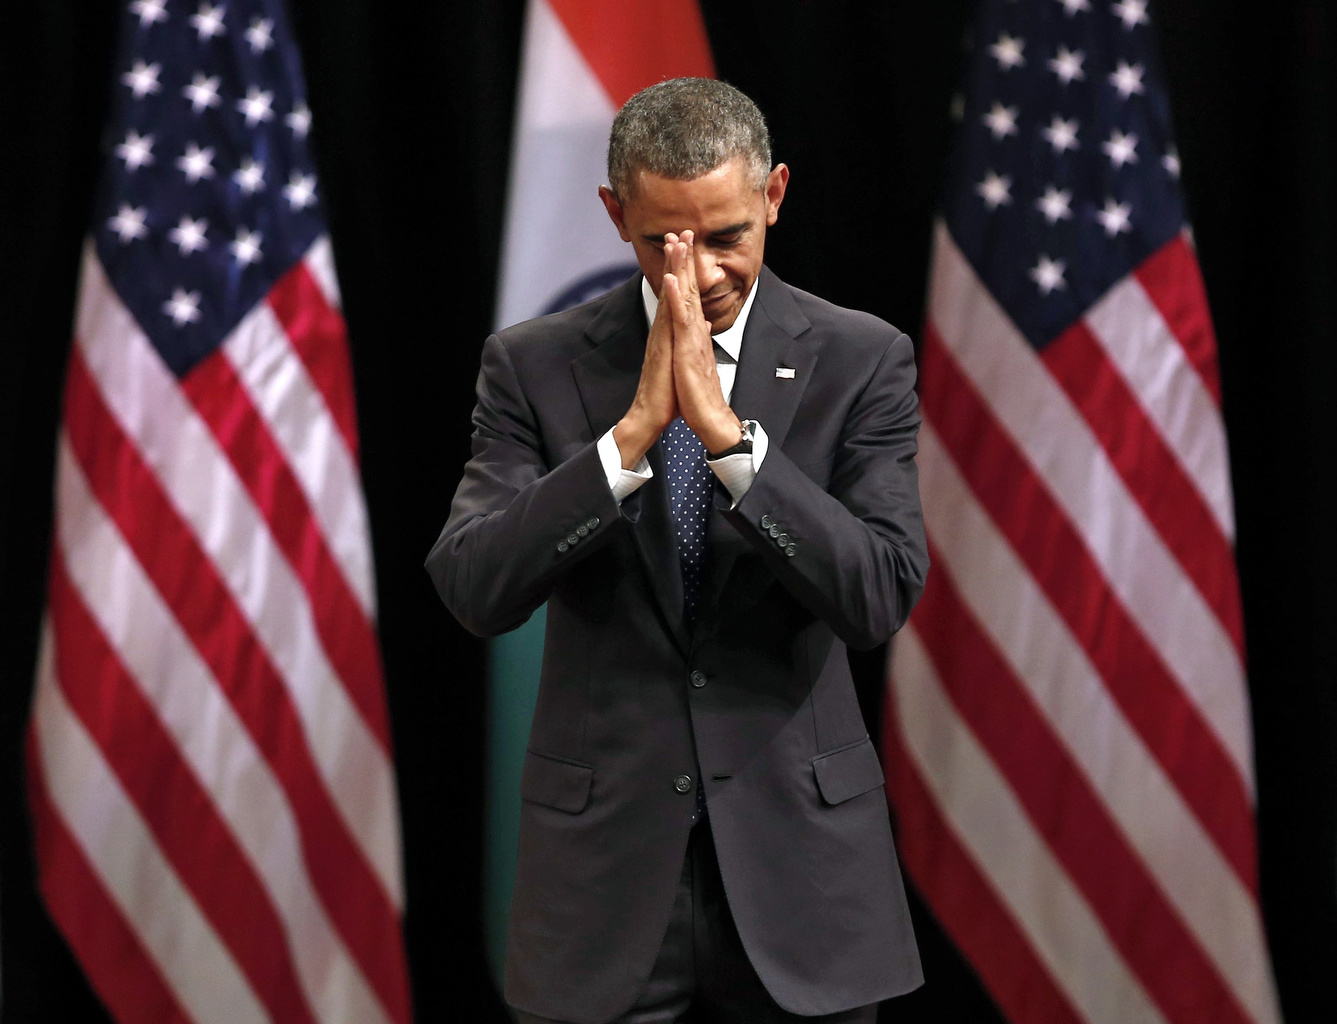 Indian Church Leader Welcomes Obama Remarks On Religious Freedom